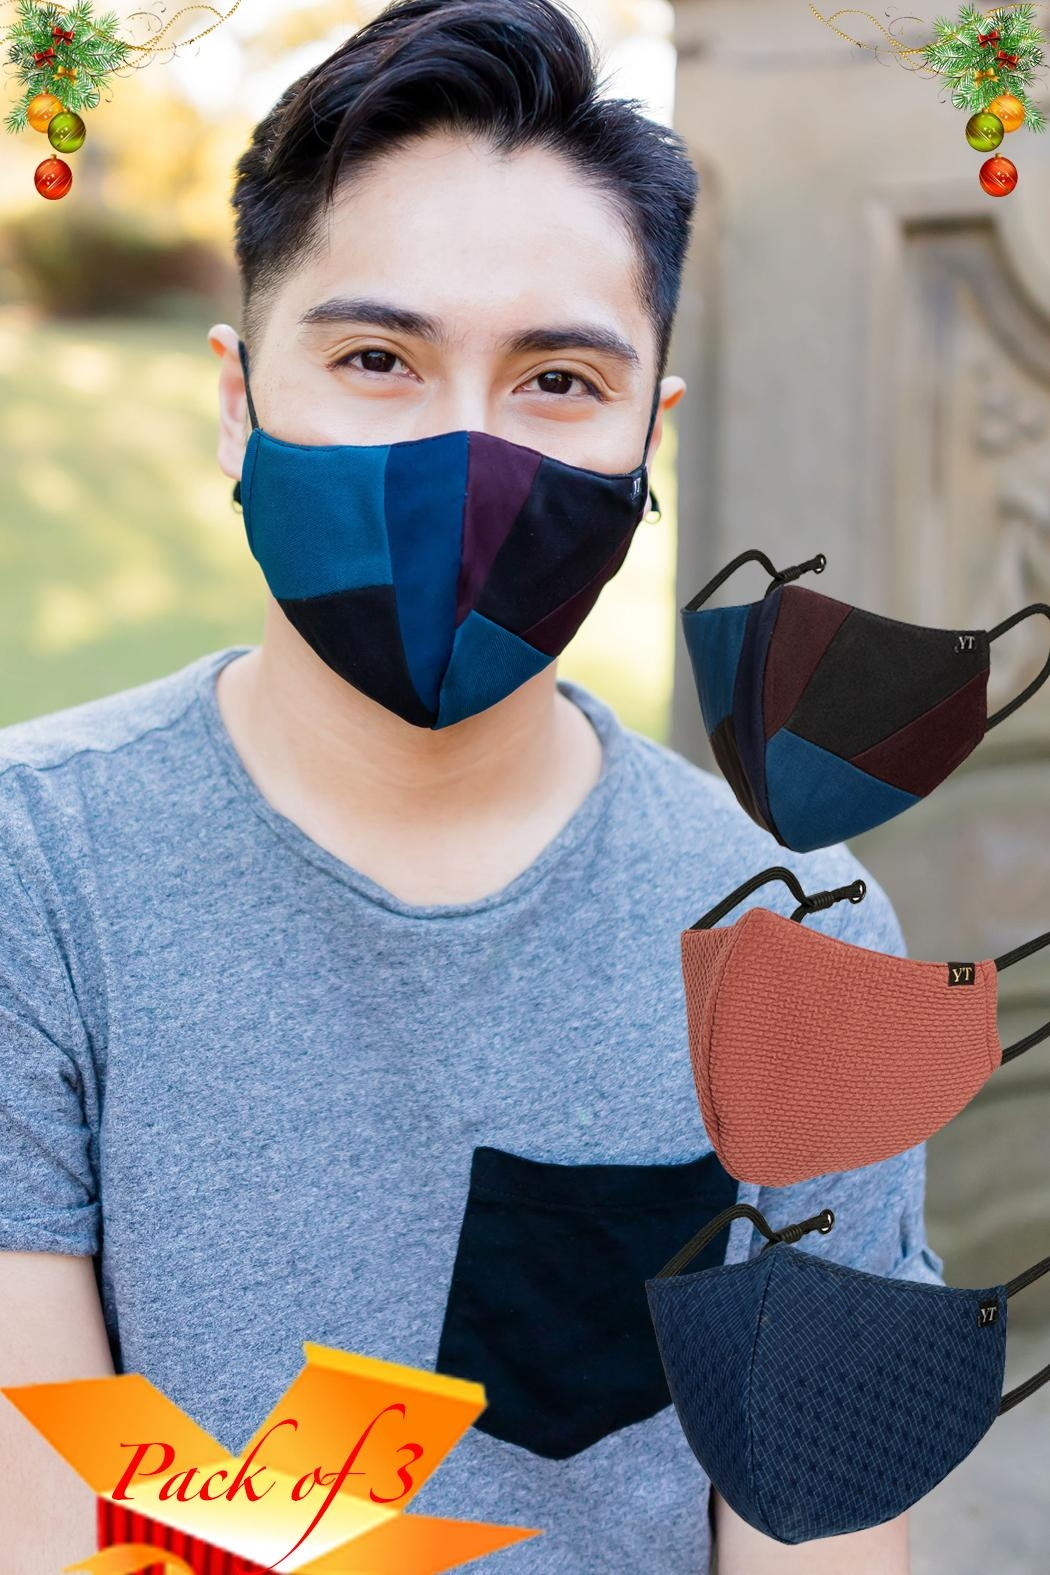 Young Threads Unisex Mask, 100% Cotton Lining, Patchwork Face Mask, 3layered Face Mask-Pack Of 3 - Main Image